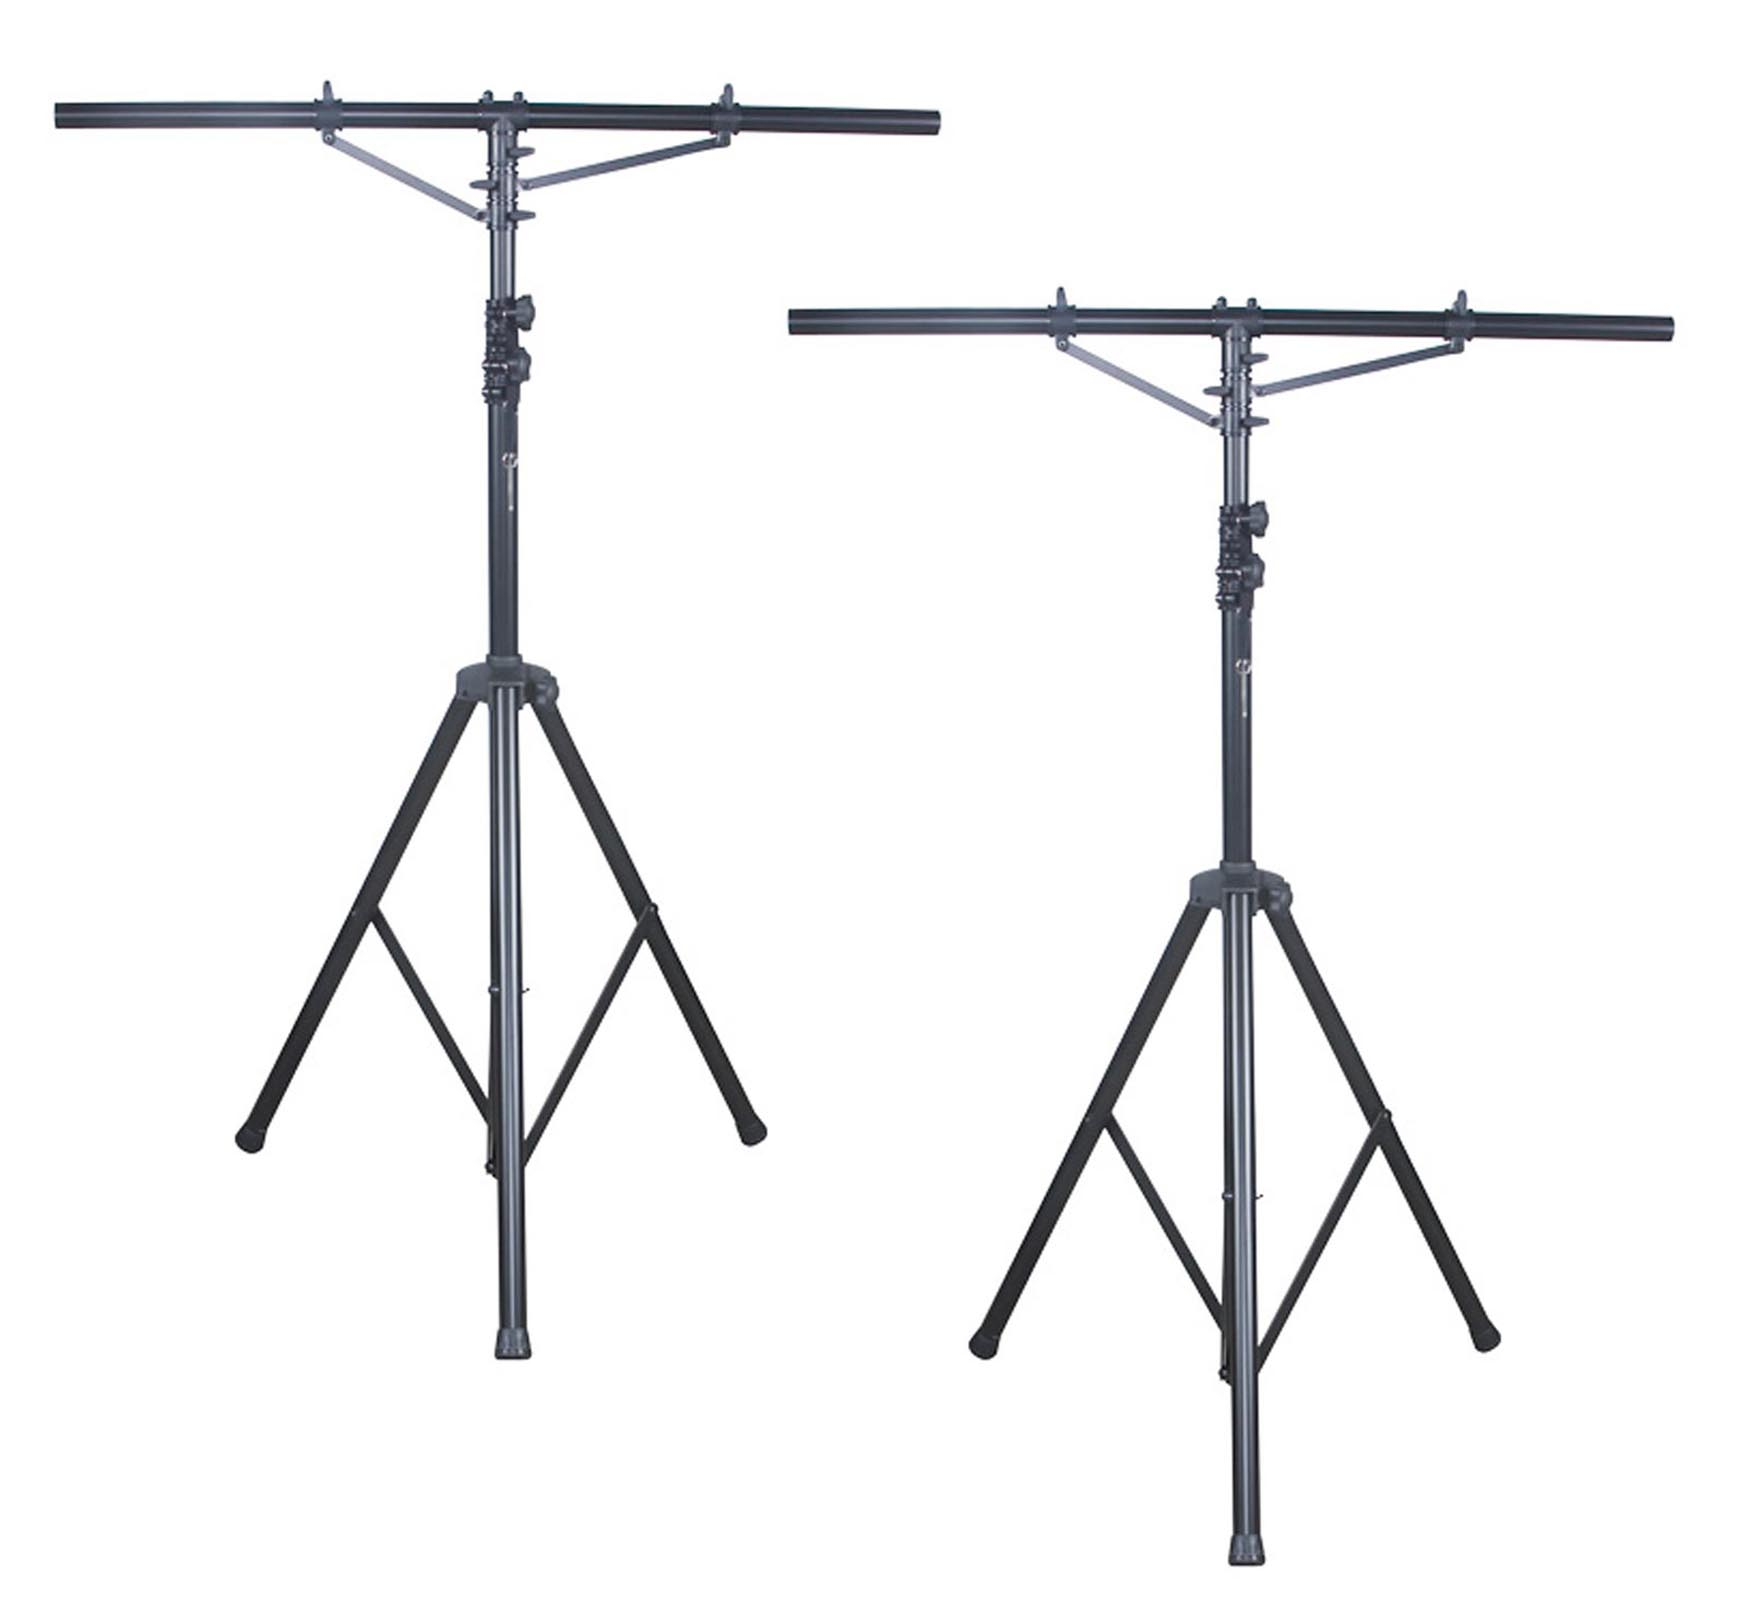 (2) AMERICAN DJ LTS-2 Aluminum Black Heavy Duty 12 Ft Tripod T-Bar Light Stands by ADJ